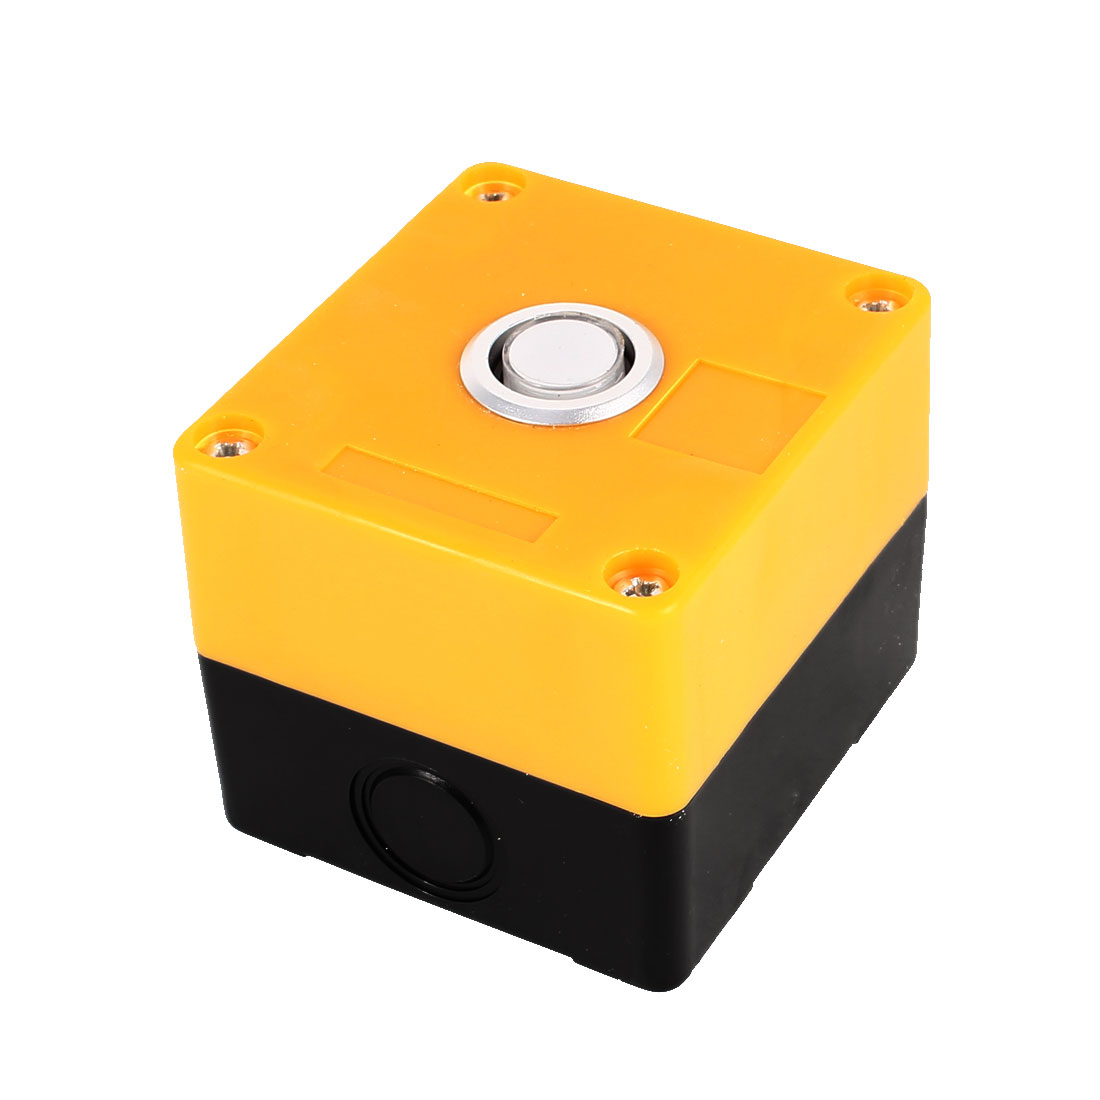 AC 220V Warm White Light SPDT 1 NO 1 NC 5 Termianls Soldering Self-Locking Type Push Button Control Station Box